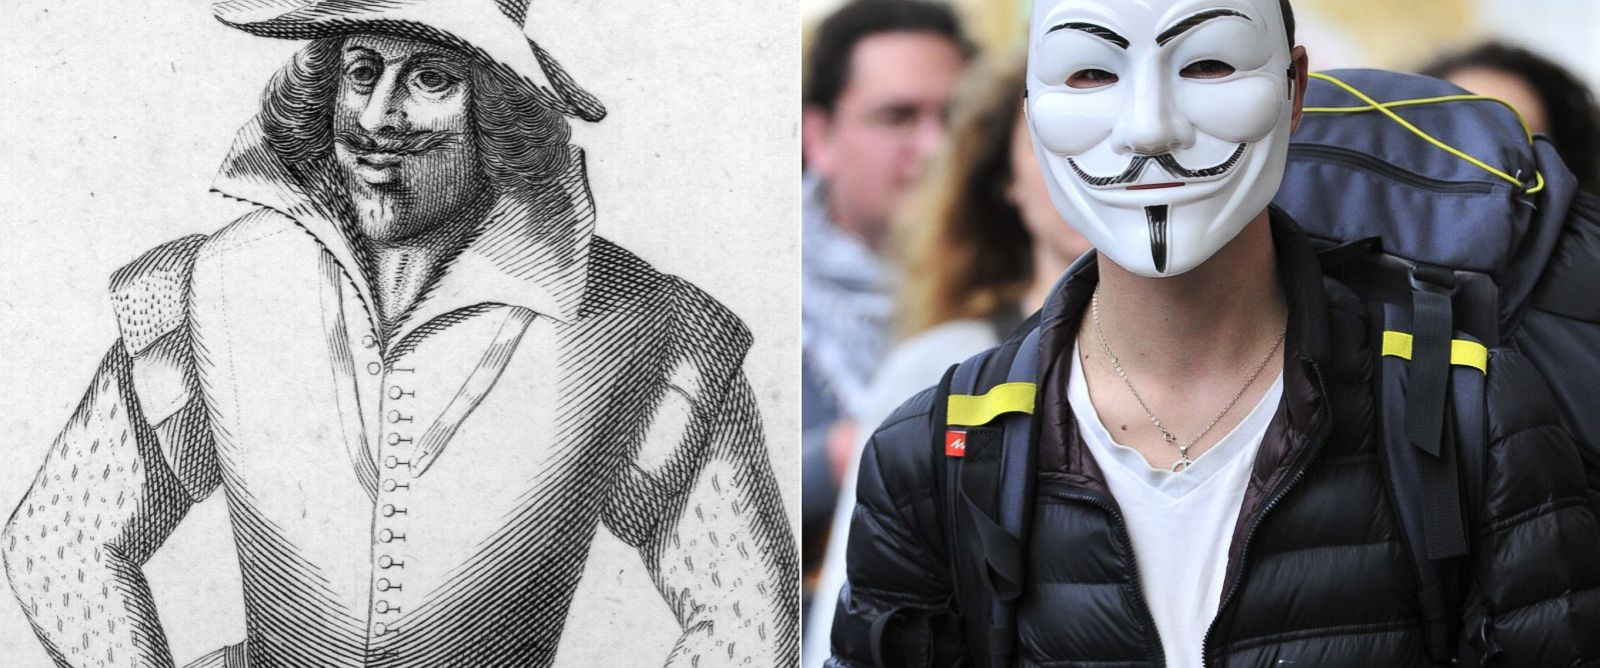 """a biography of fawkes guy the english conspirator Guy fawkes biography revolutionary guy fawkes is the most famous among the conspirators who took part in 1605's """"gunpowder plot,"""" a failed attempt to blow up king james i of england and the houses of parliament."""